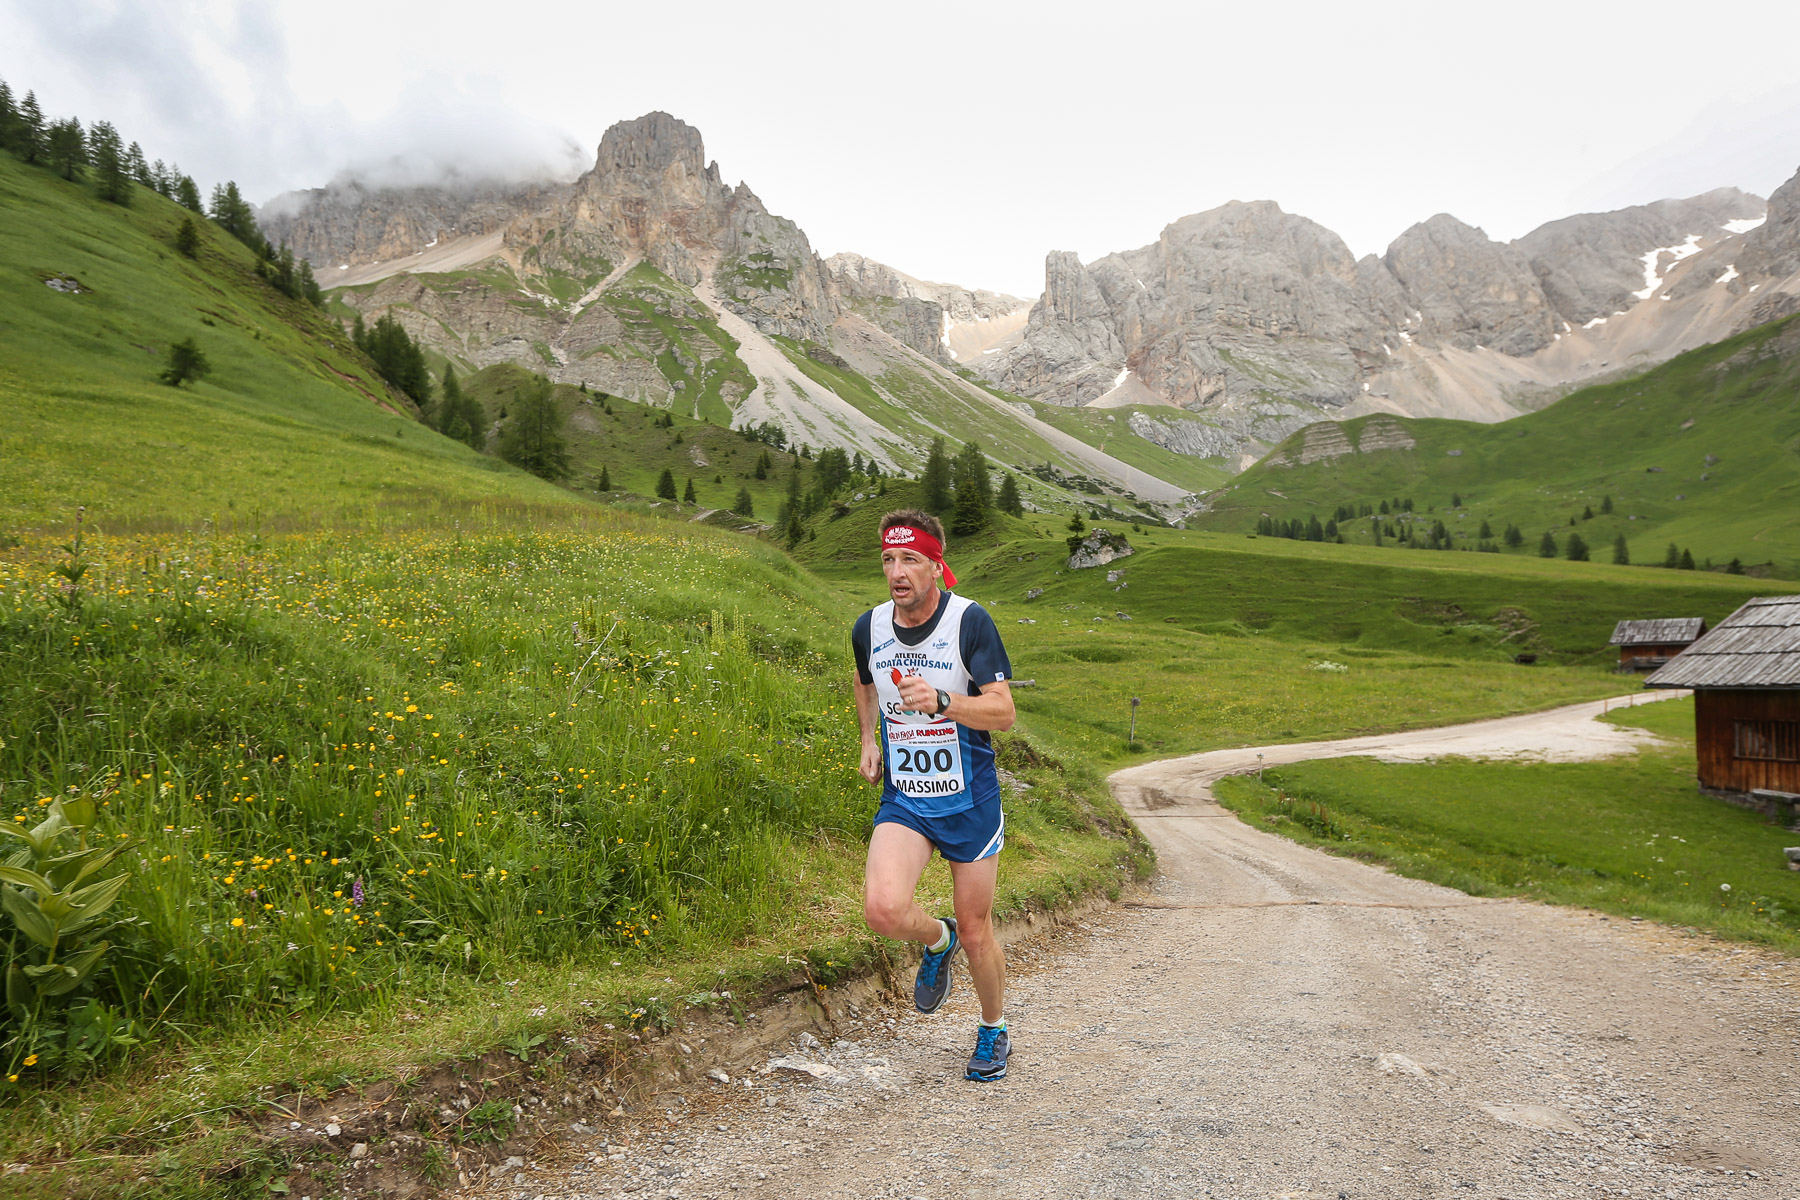 Day 2 - Galliano in azione alla Val di Fassa Running 2018